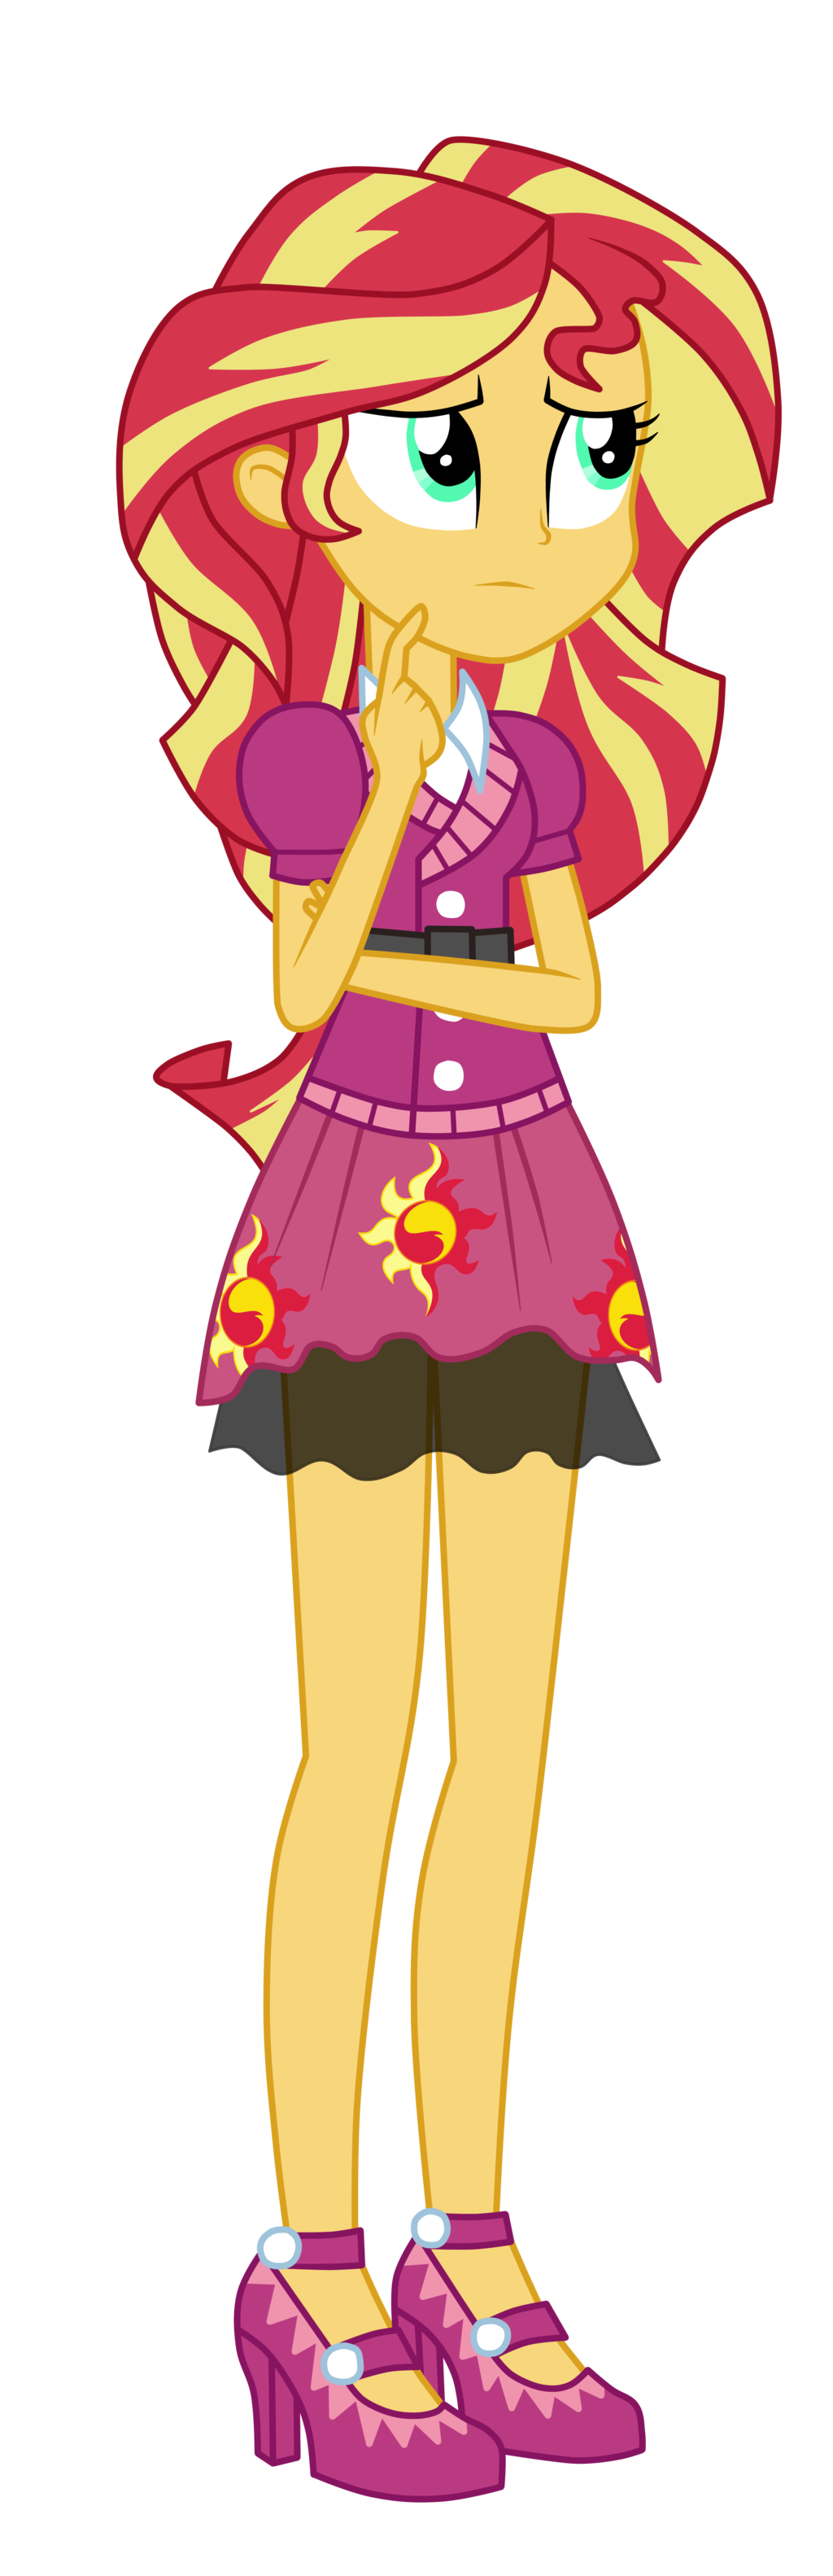 Sunset shimmer friendship games. Costume clipart game